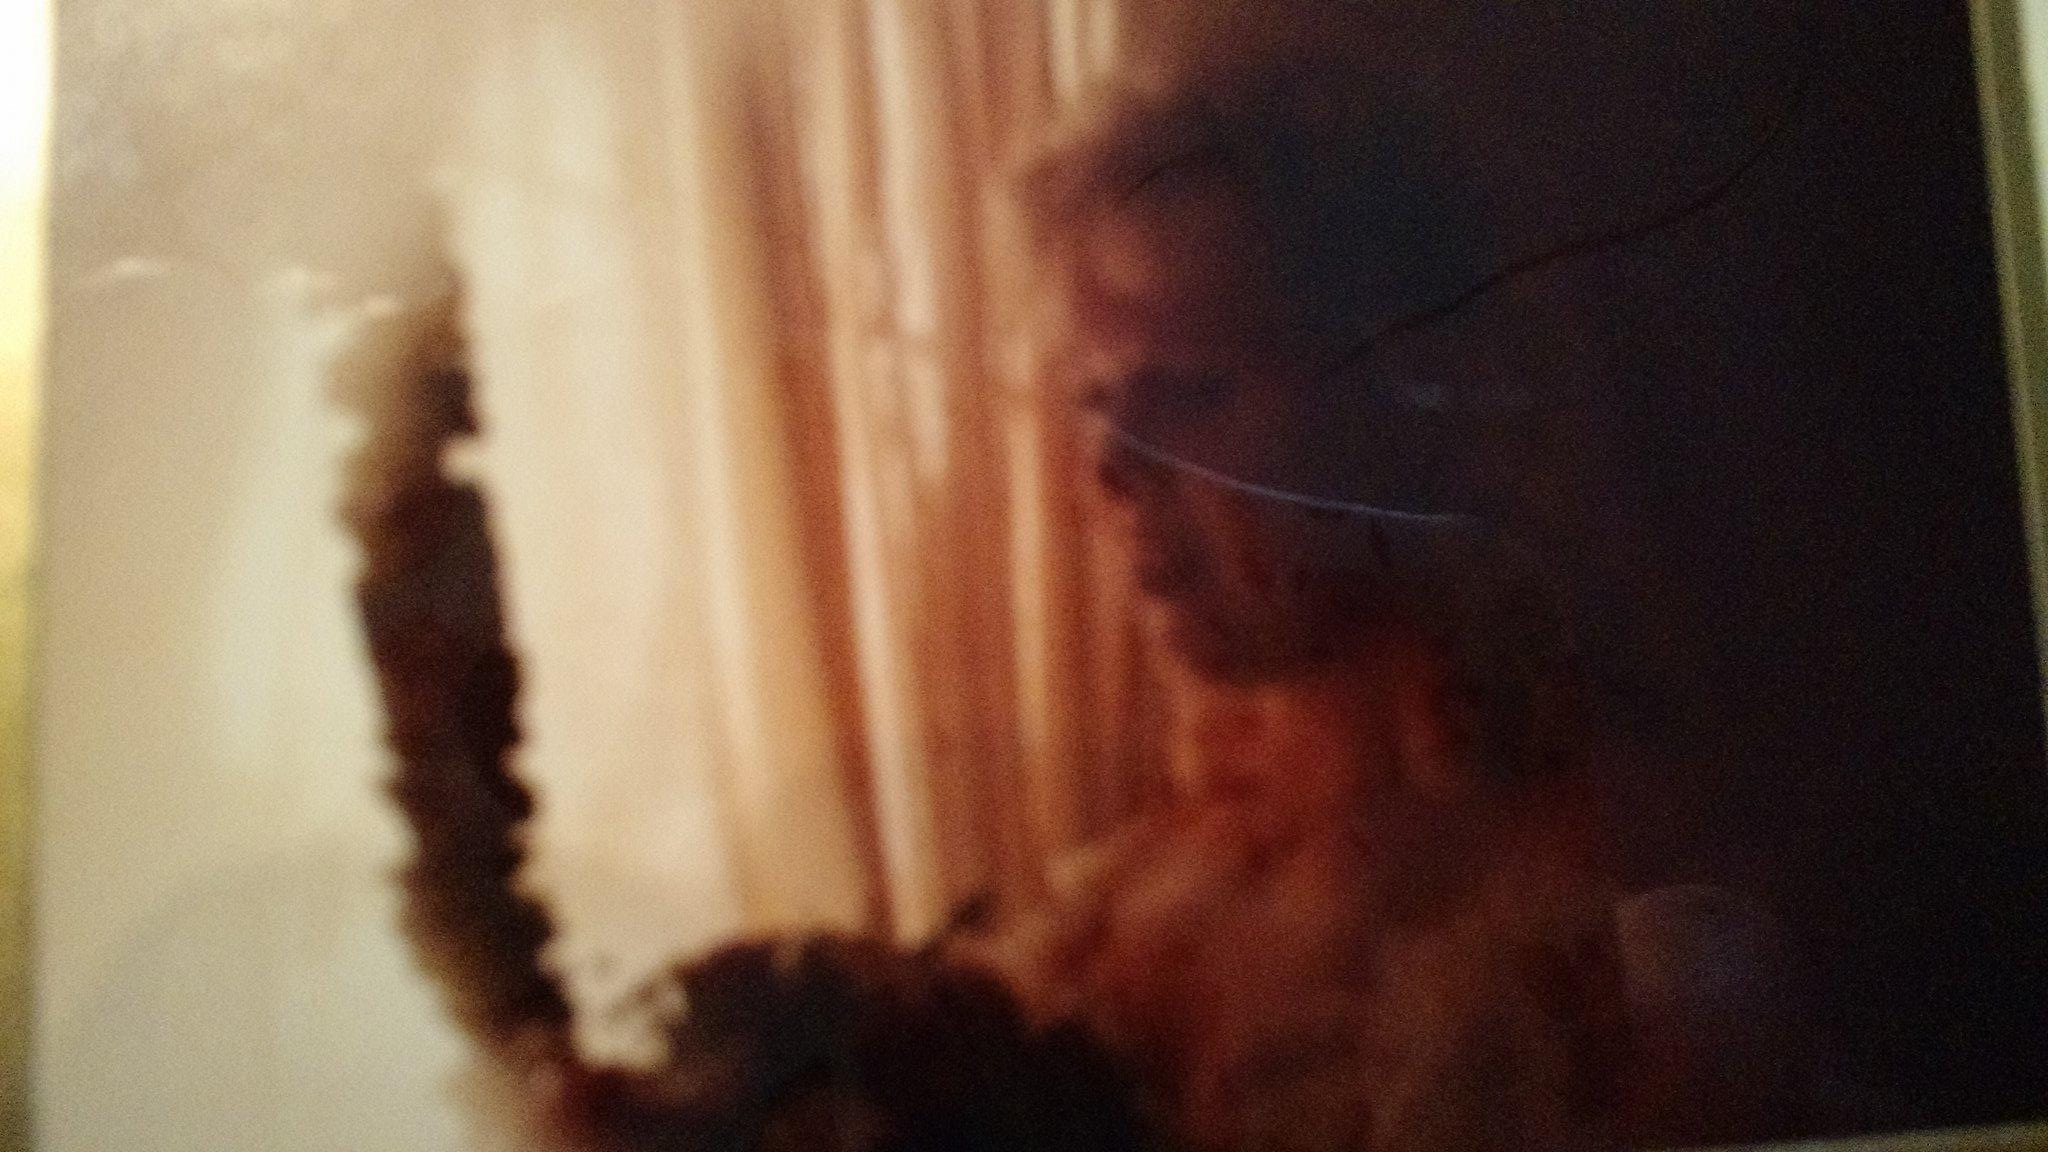 October 20, 1984 - before the wedding